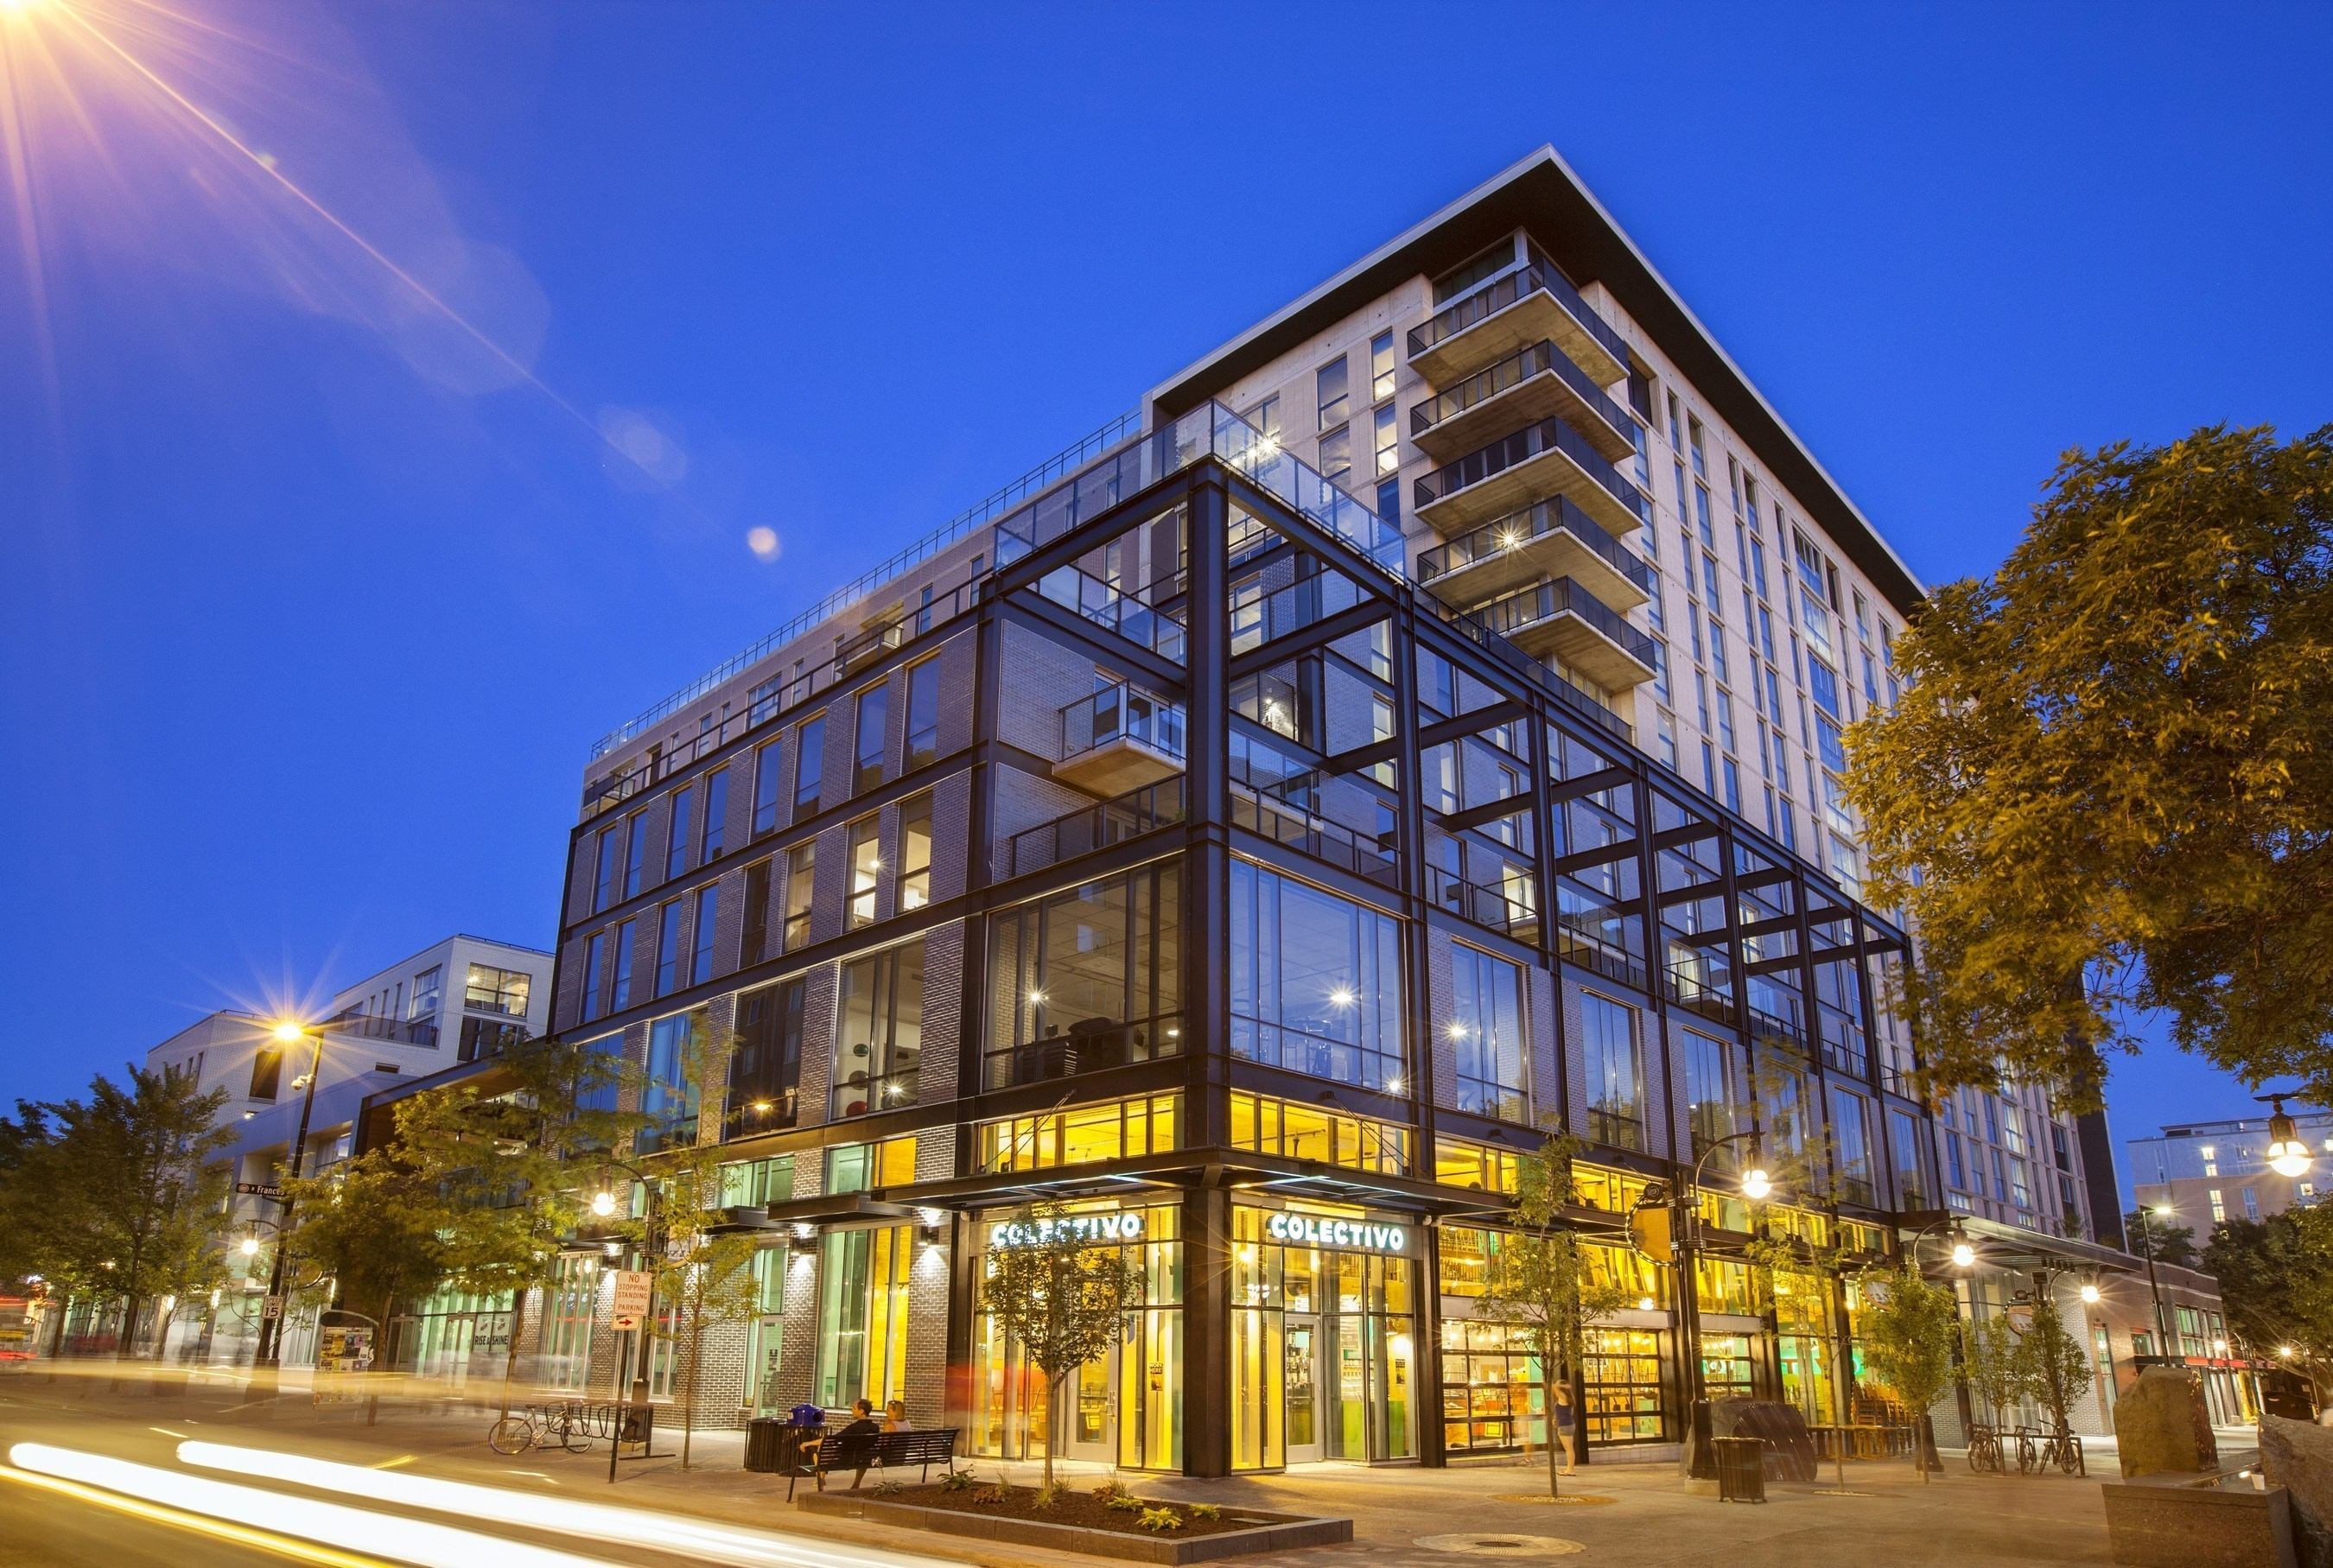 Hub Madison Receives The Highest Award From The National Association Of Home Builders (NAHB)